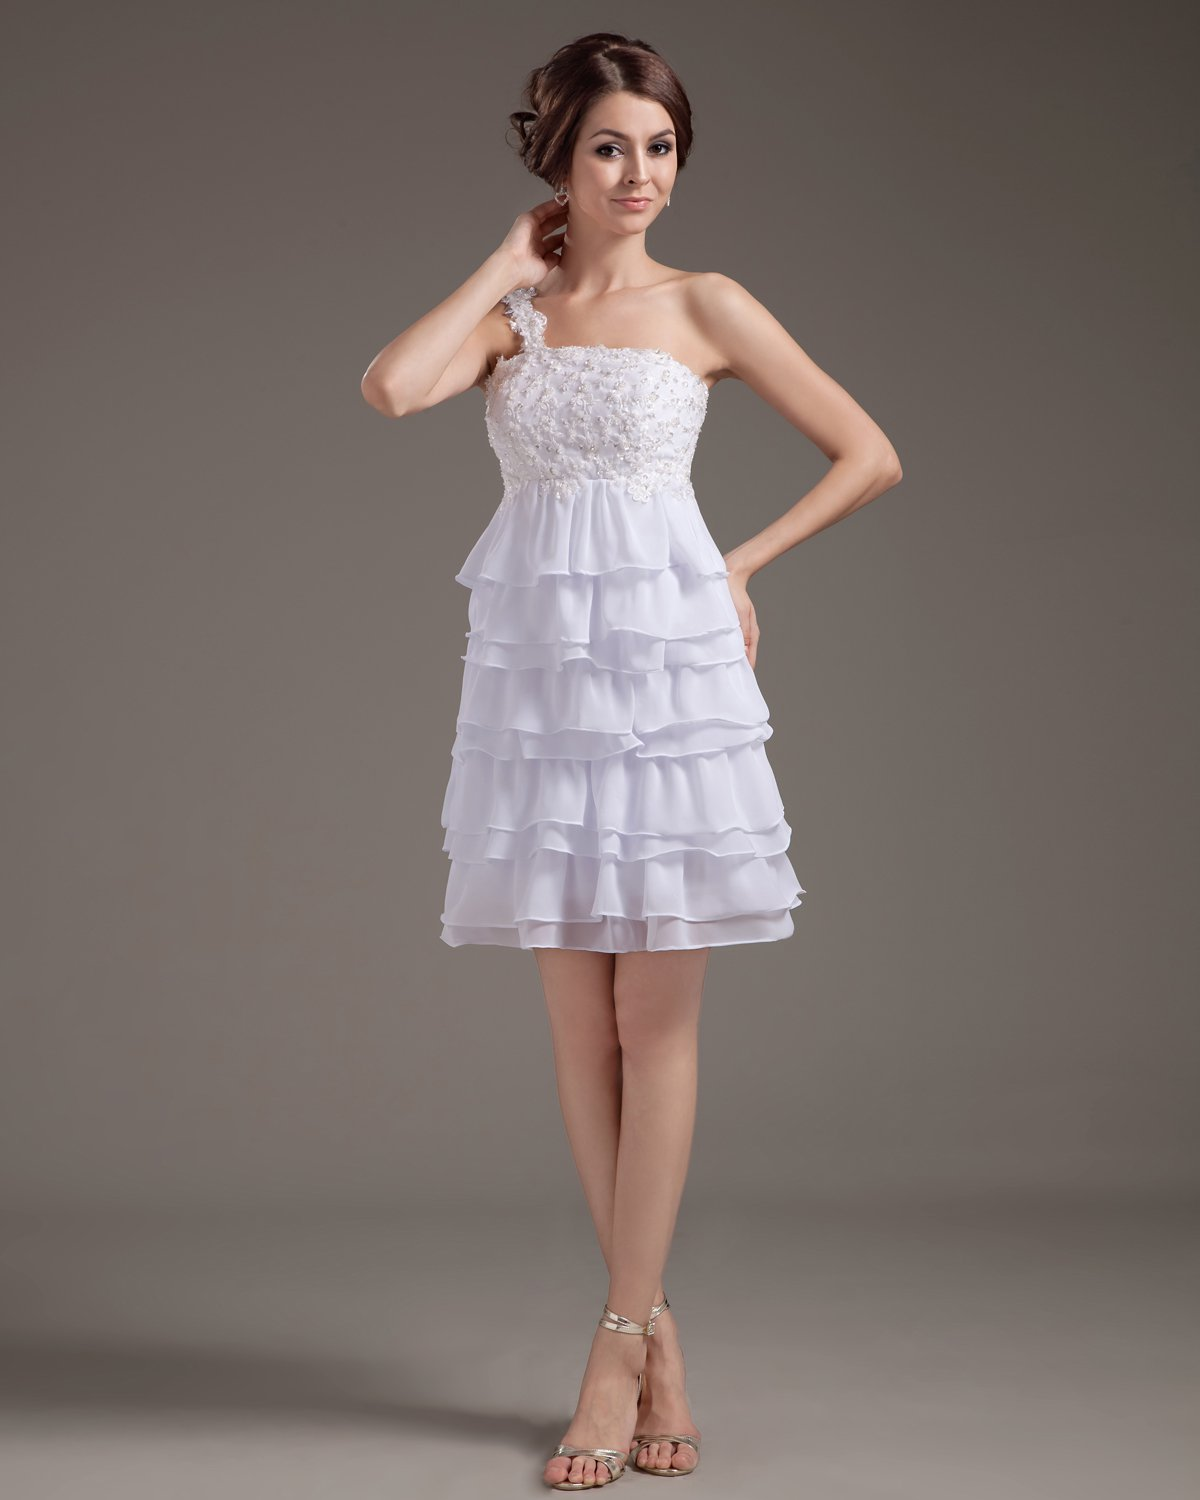 Chiffon Ruffle Layered Short Bridal Gown Wedding Dresses